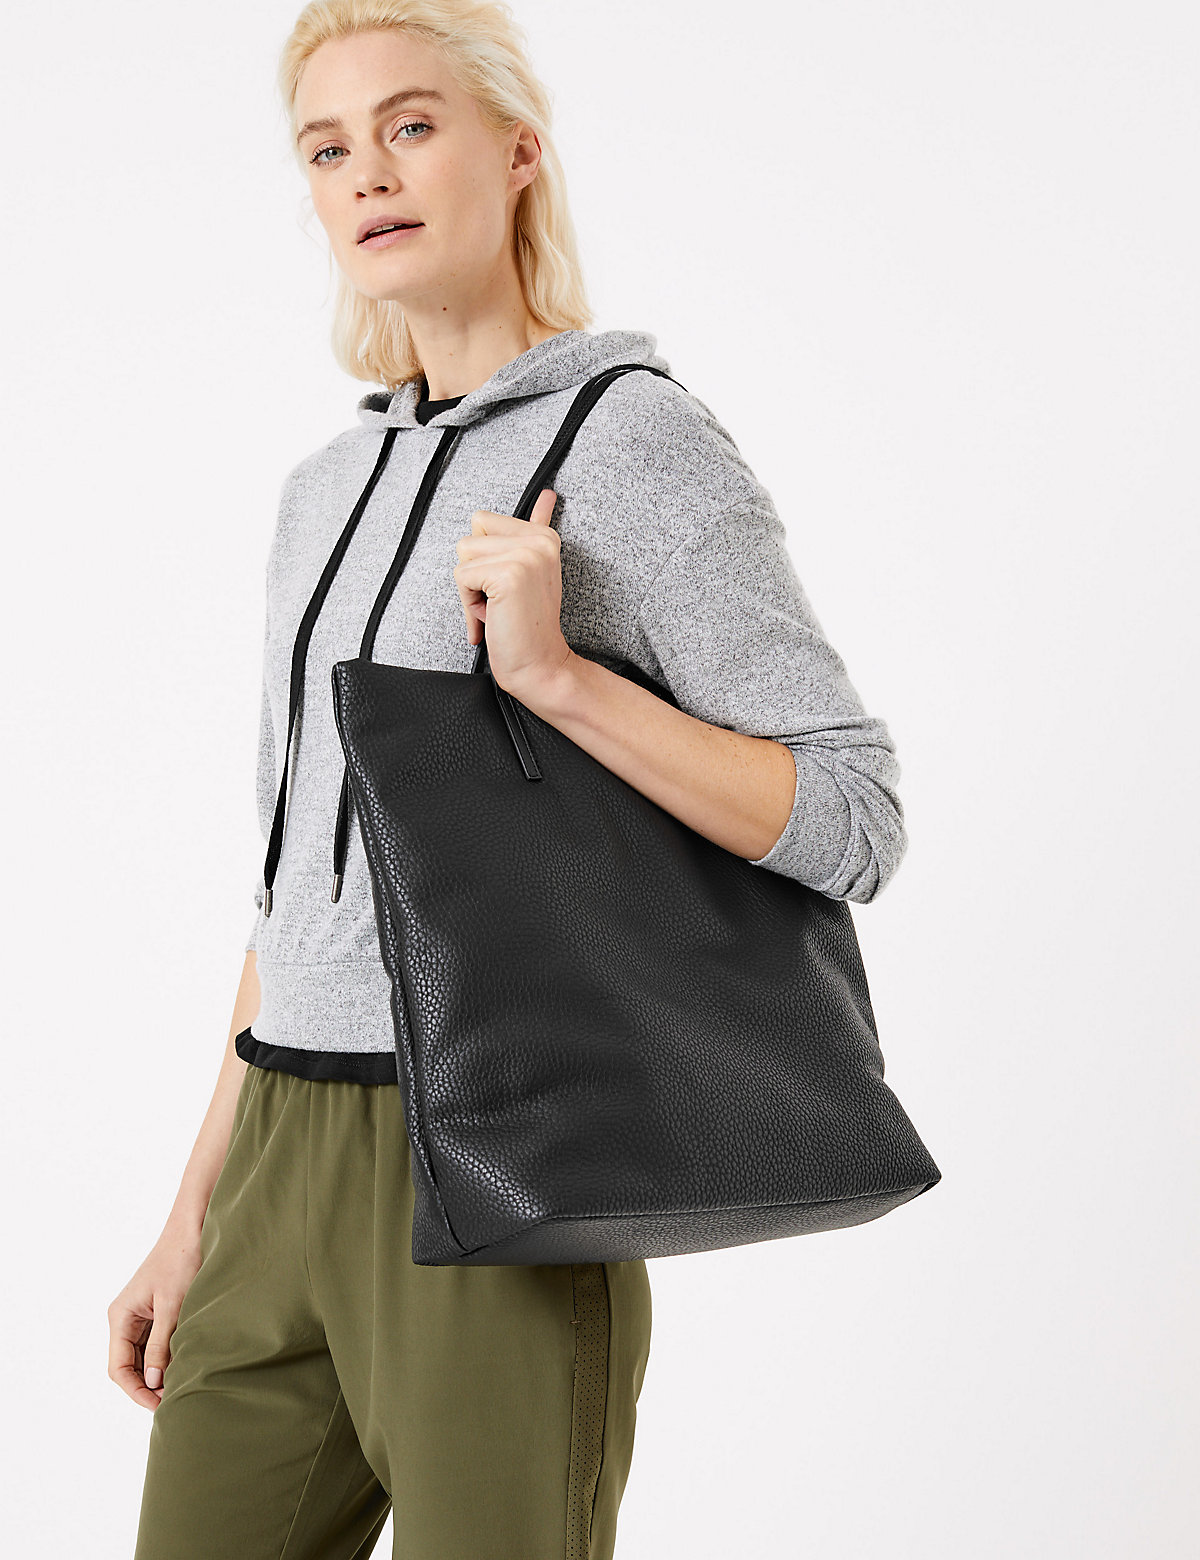 GOODMOVE Casual Shopper Bag